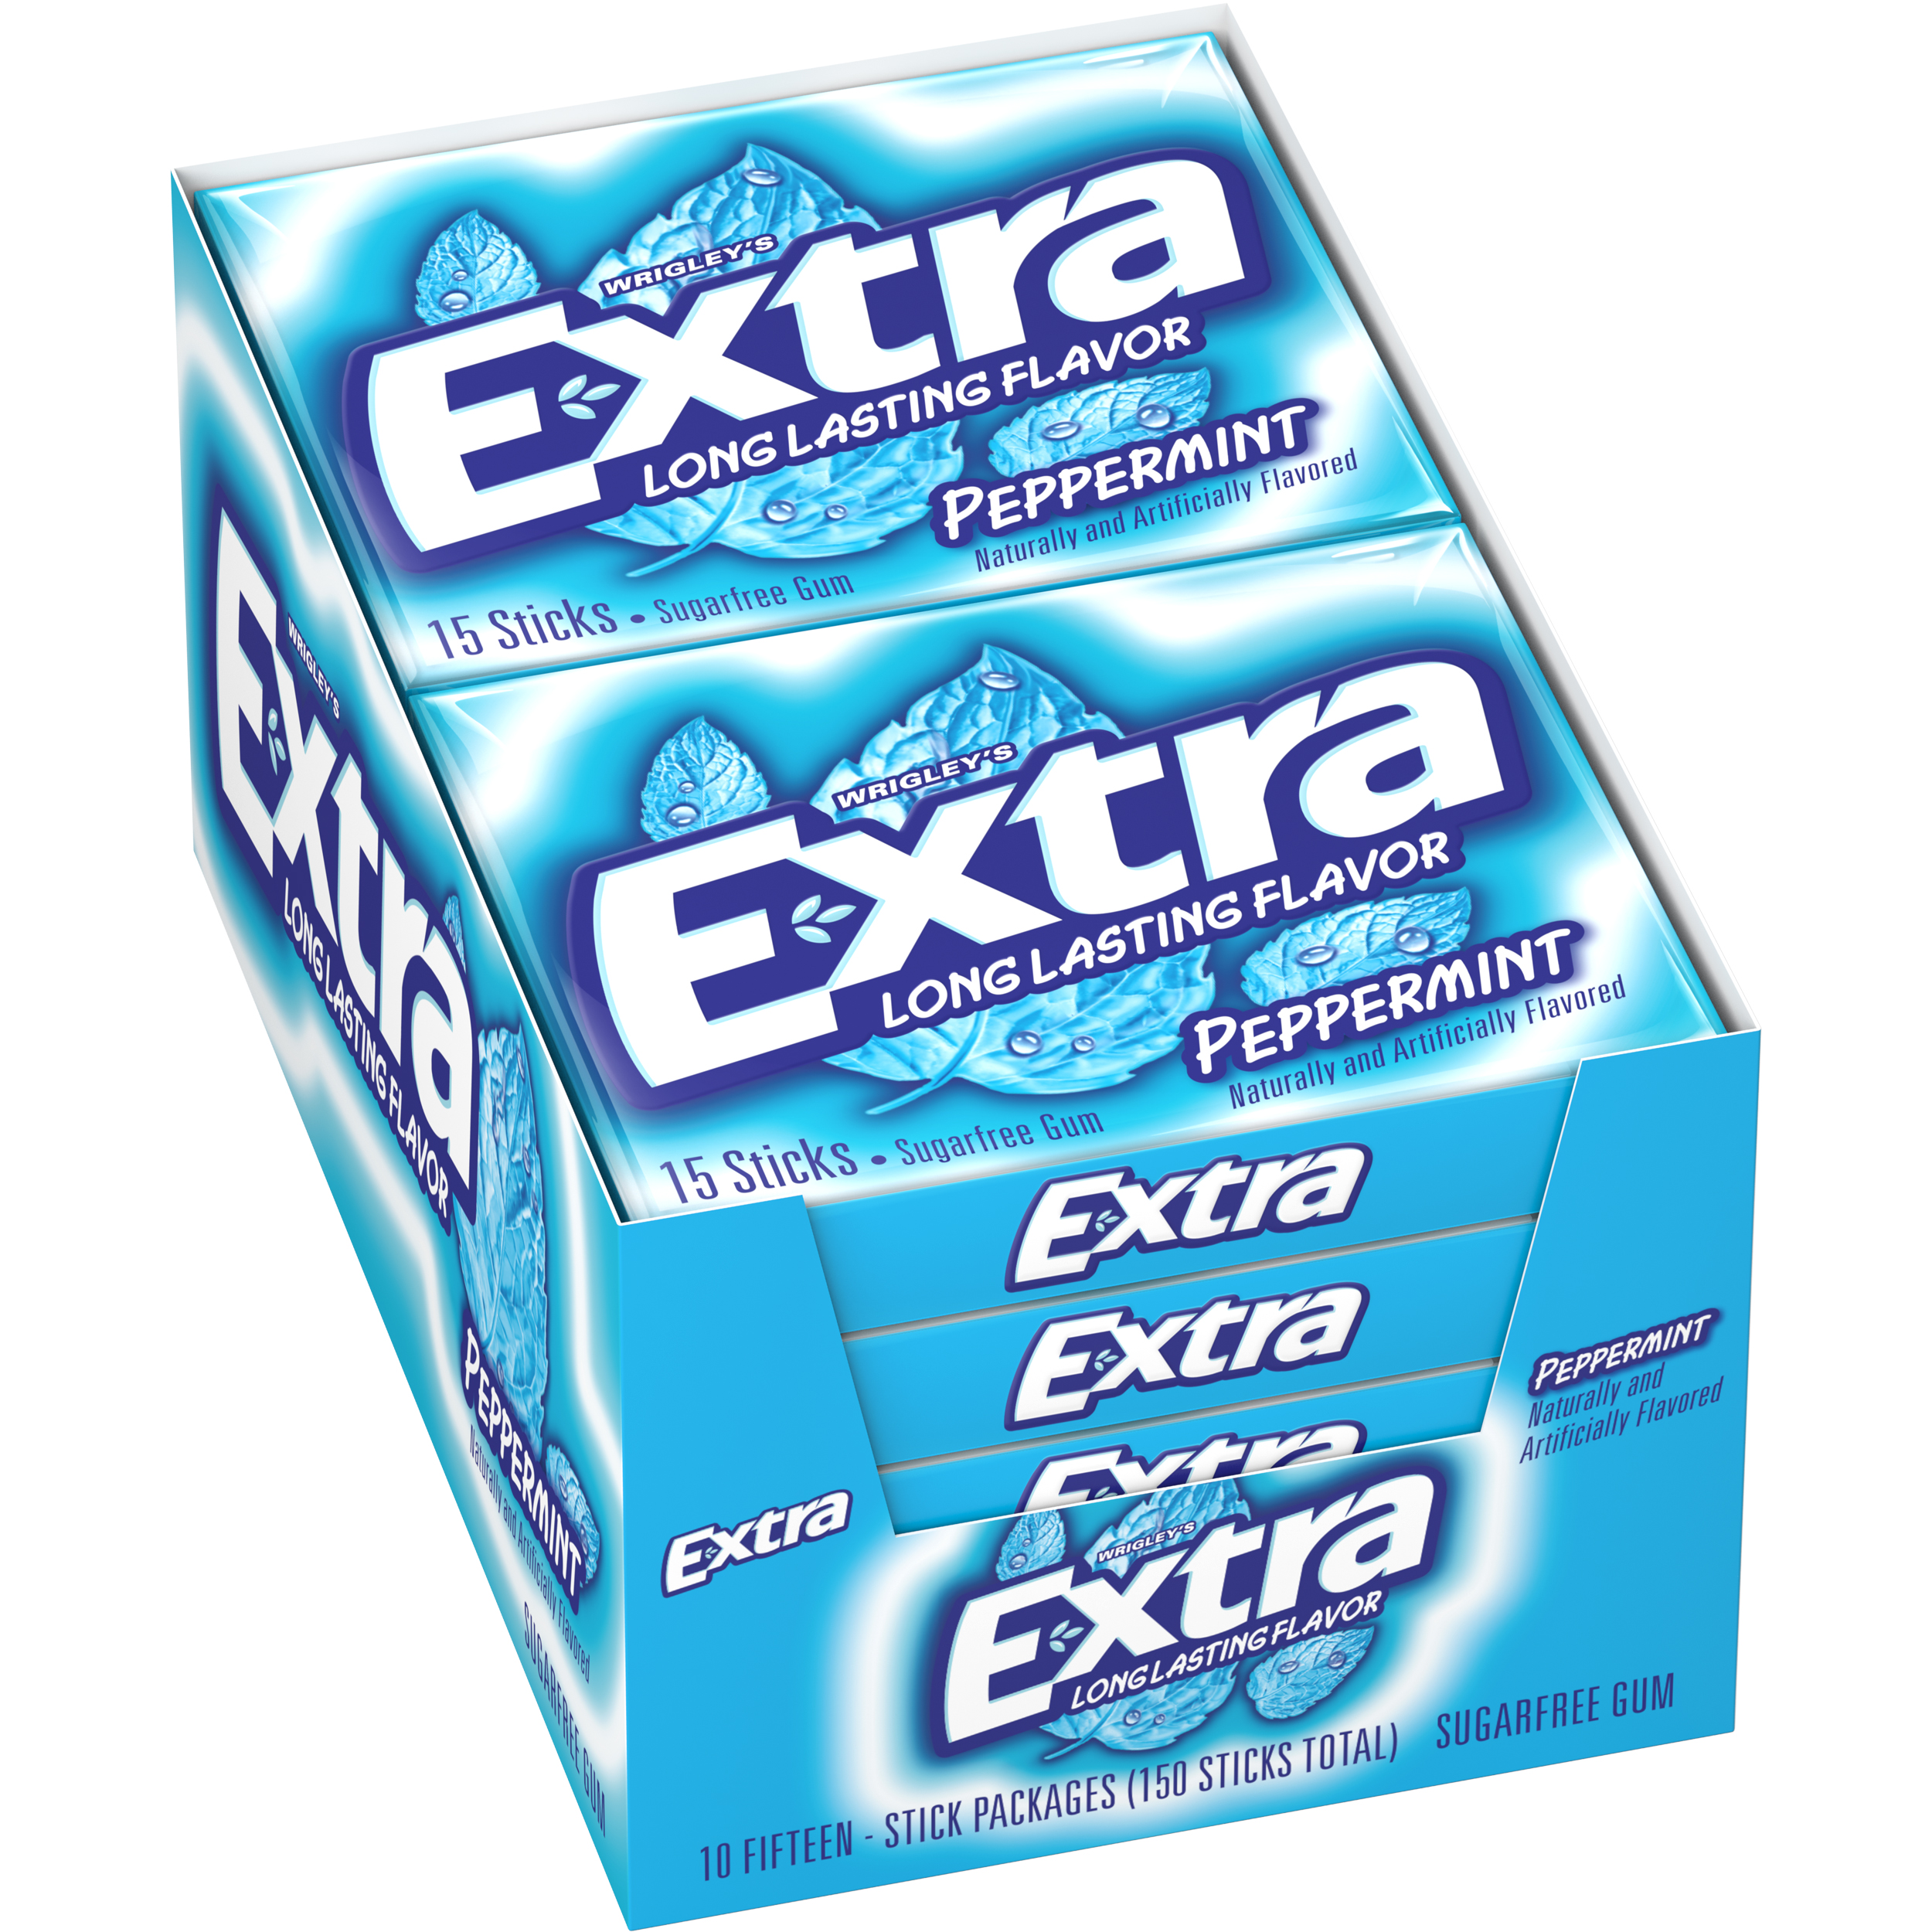 Extra, sugar free peppermint chewing gum, 10 ct